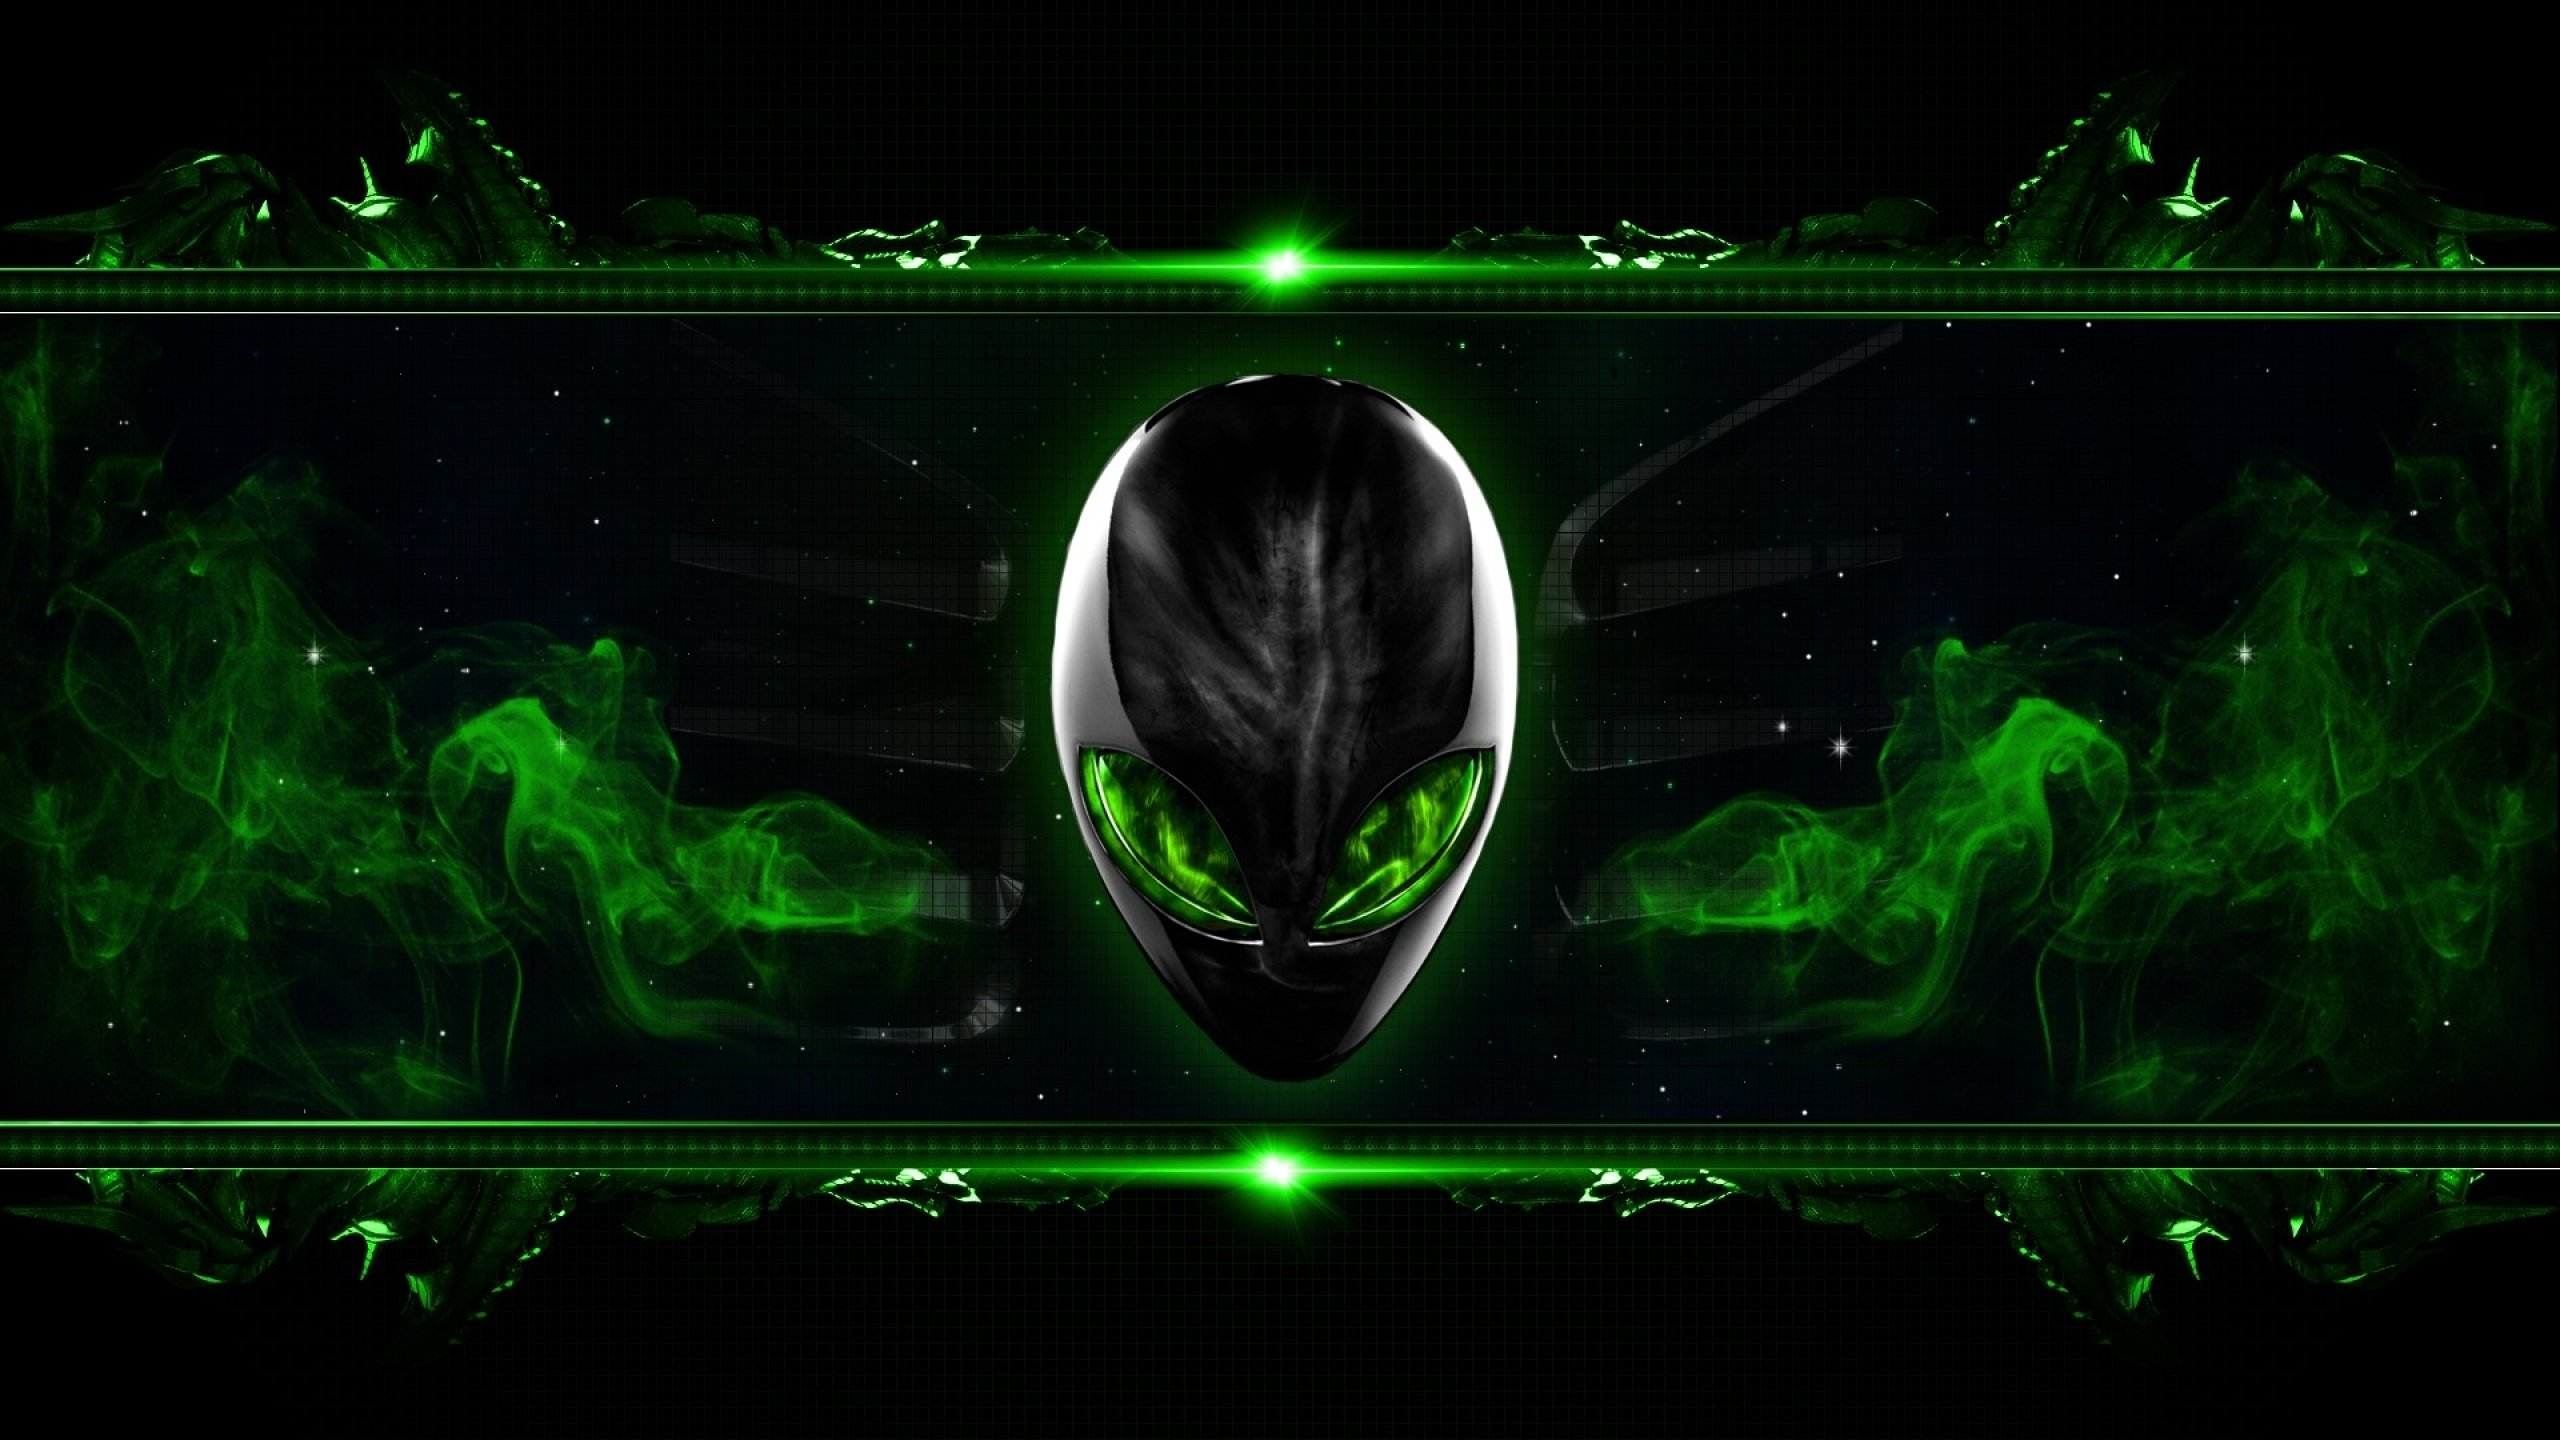 Alienware Logo Wallpaper Hd Images amp Pictures   Becuo 2560x1440